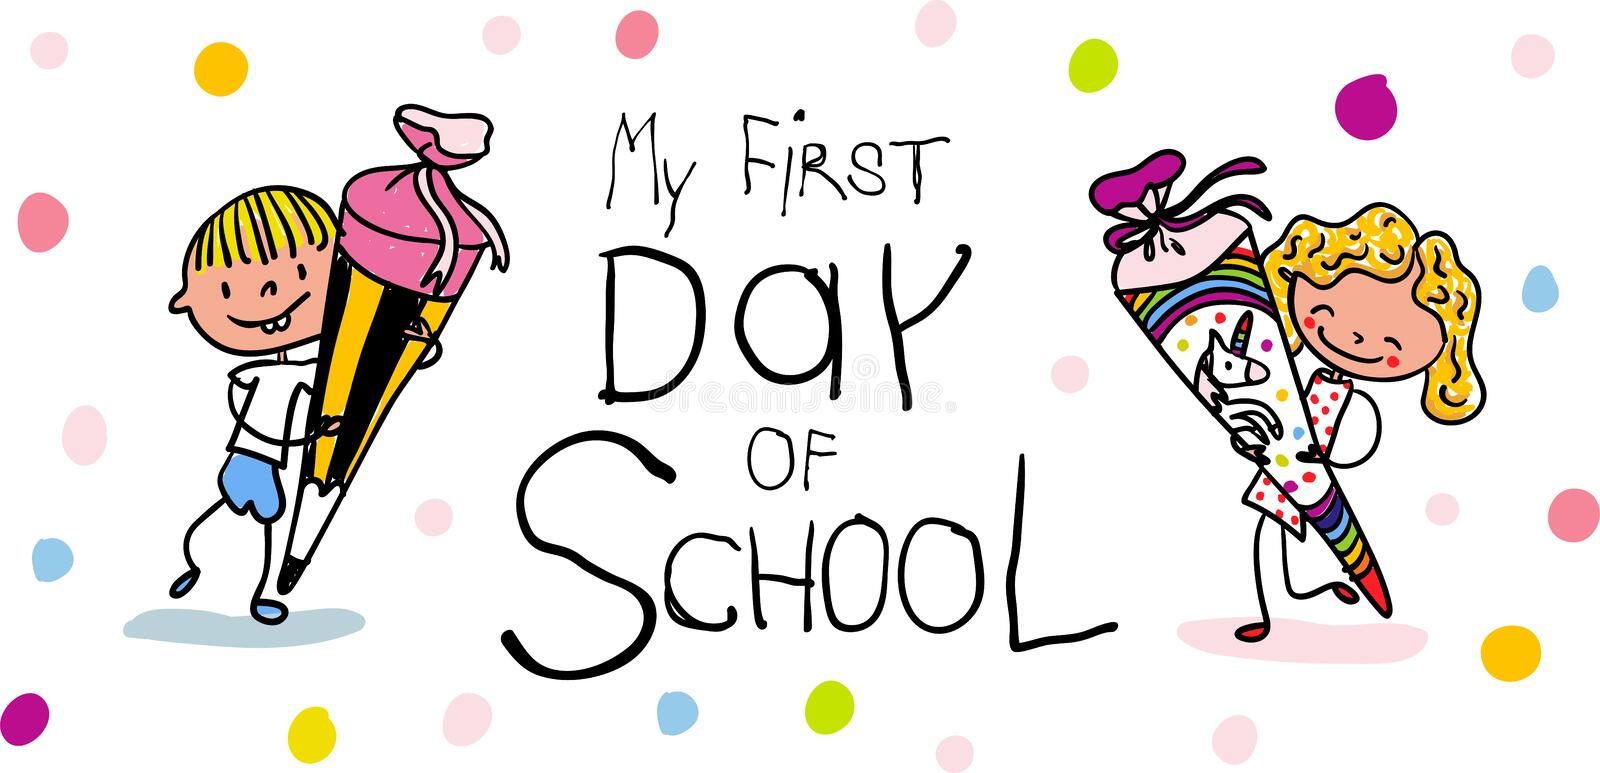 Enrollment - First Day of school - Cute first graders with school cones - colorful hand drawn cartoon vector illustration